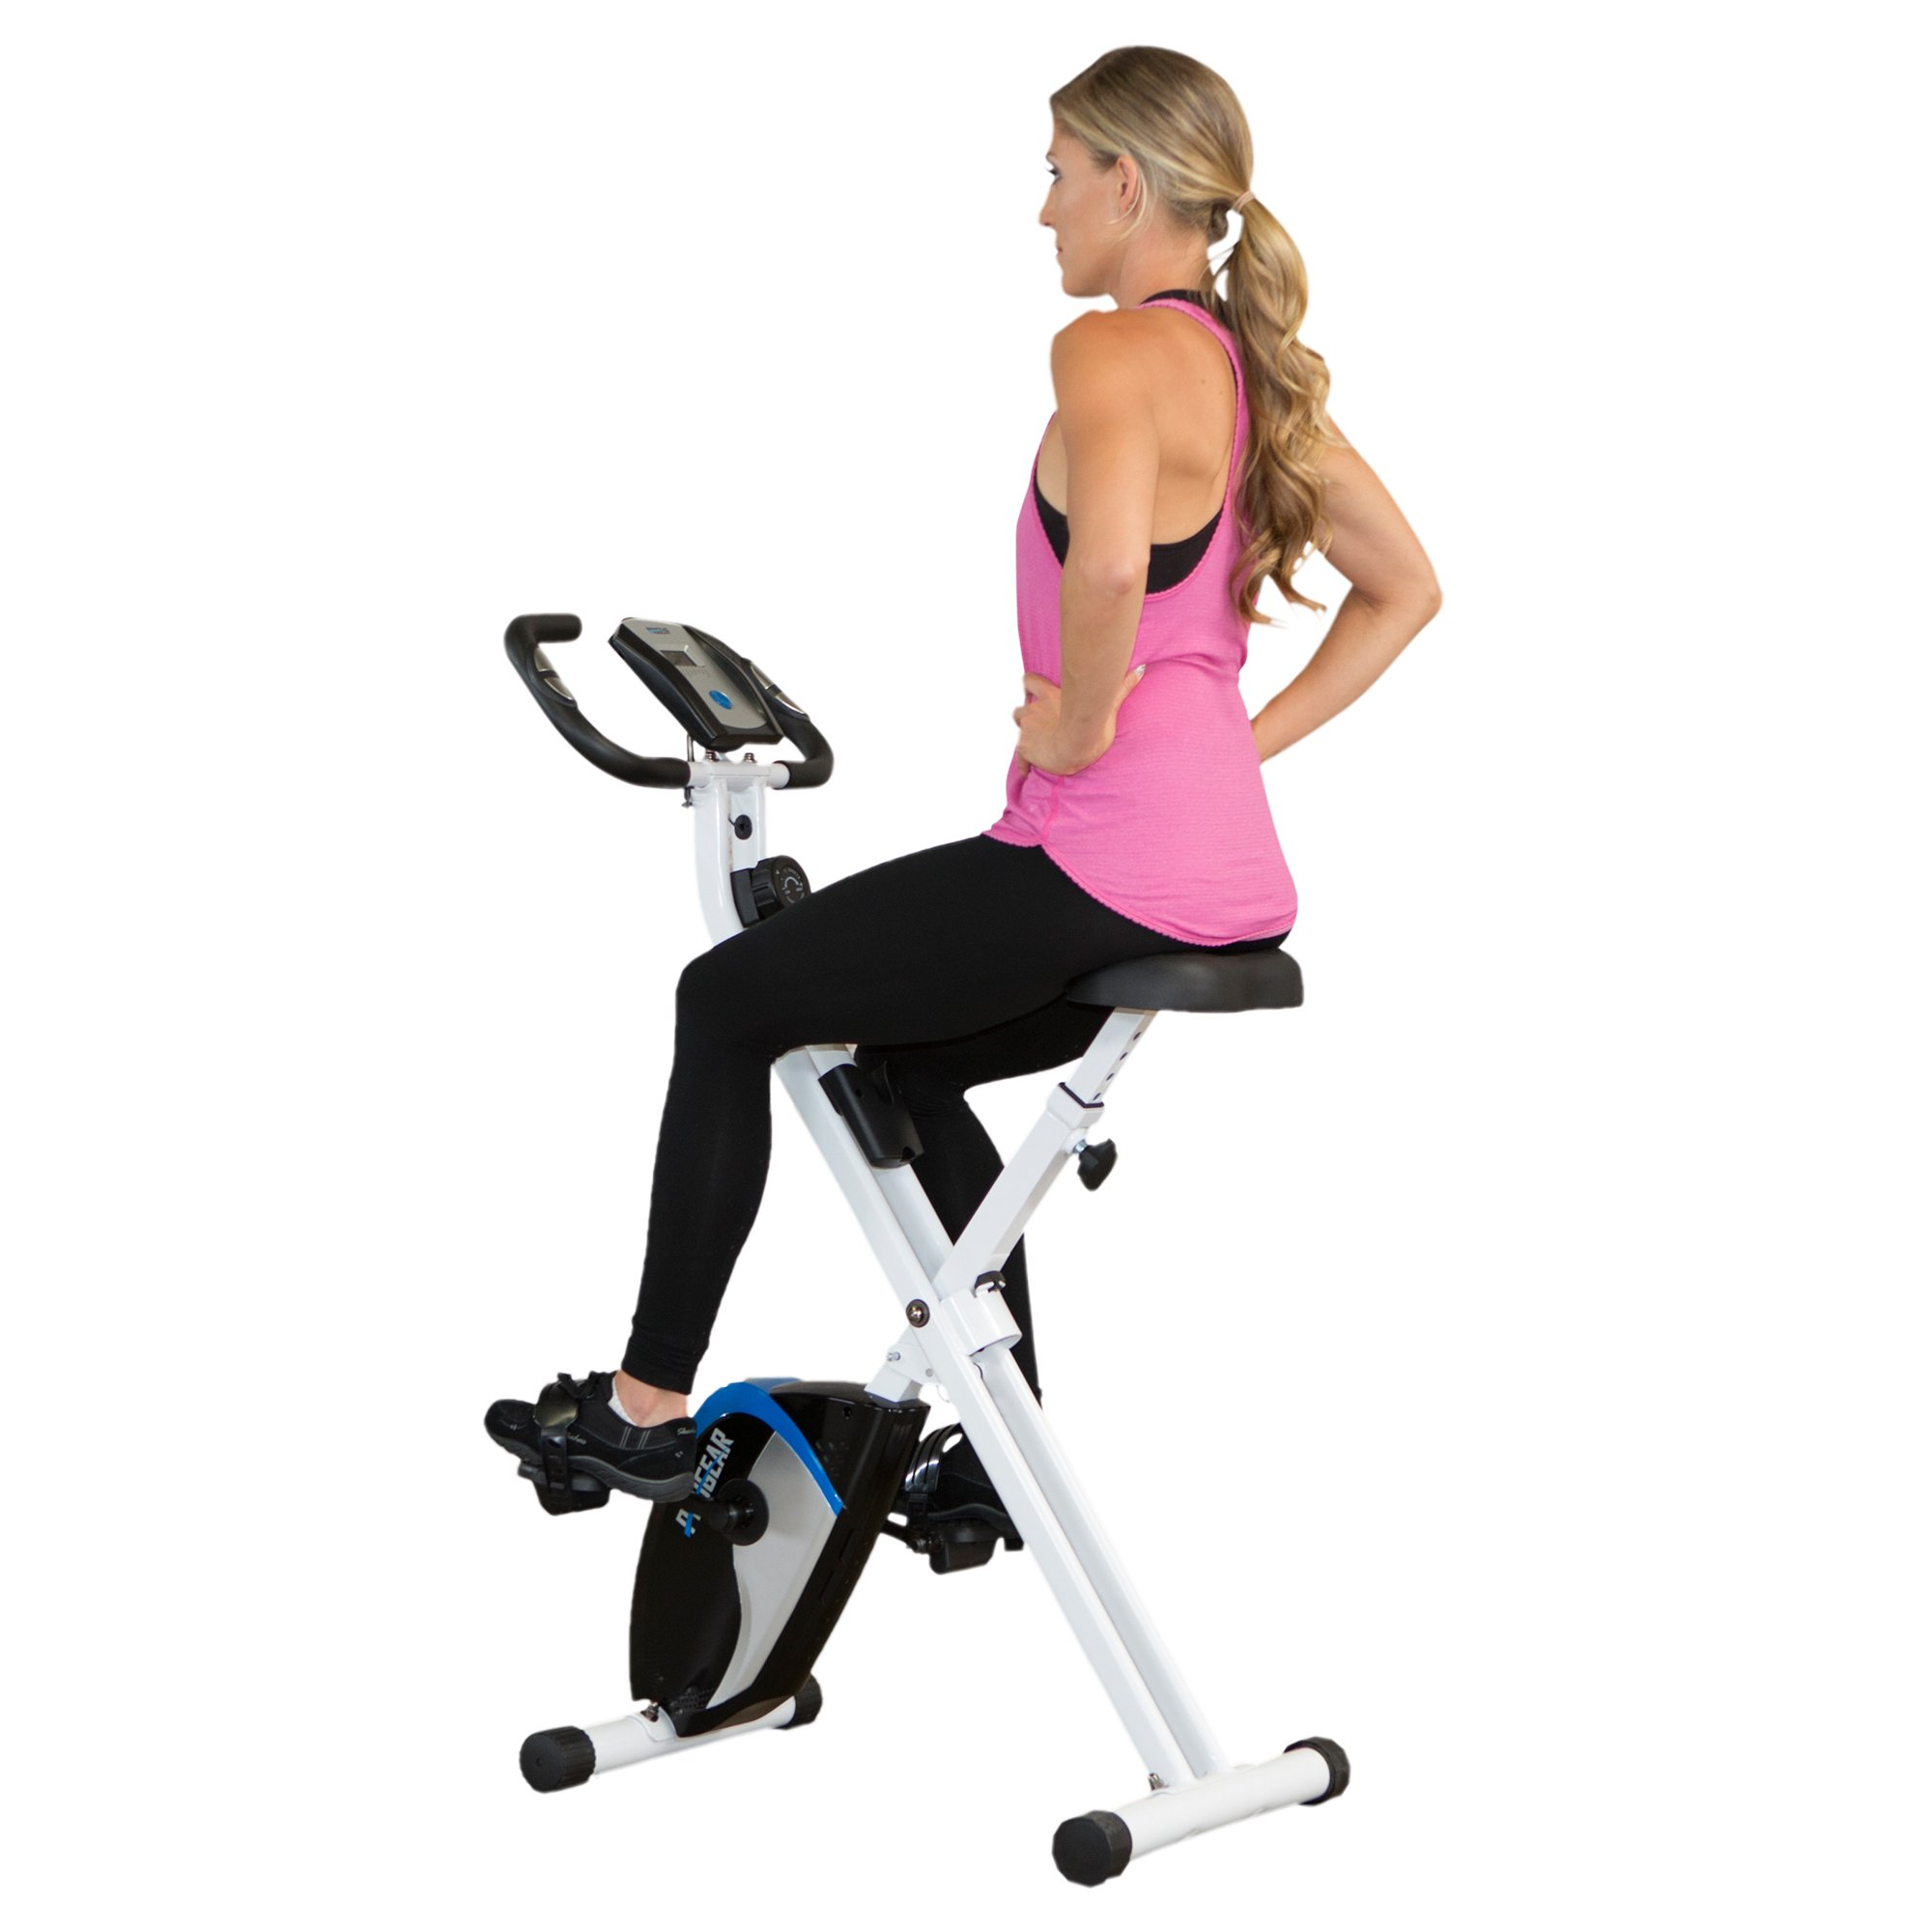 ProGear 225 Folding Magnetic Upright Exercise Bike with Heart Pulse by ProGear (Image #1)